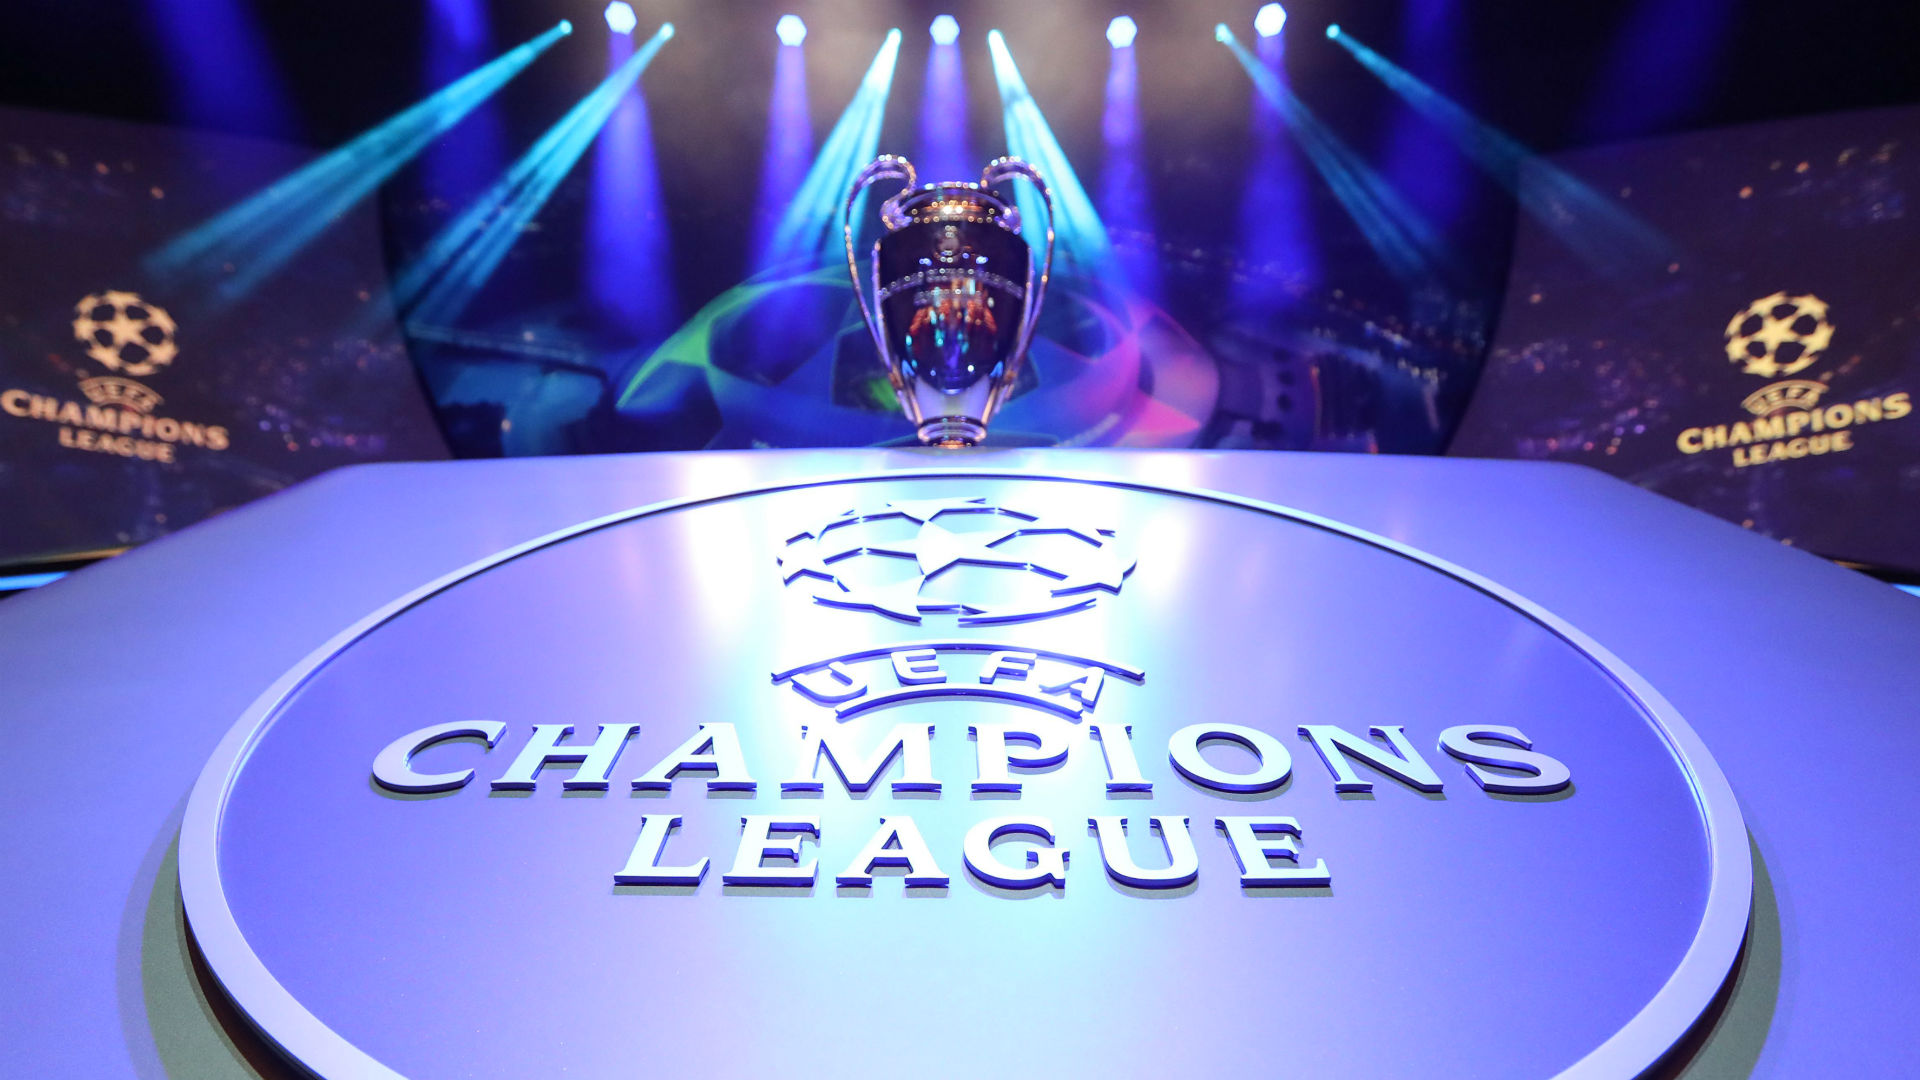 Champions League schedule 2020: Full table, bracket & more to know for Round of 16 to UEFA Final - sporting news